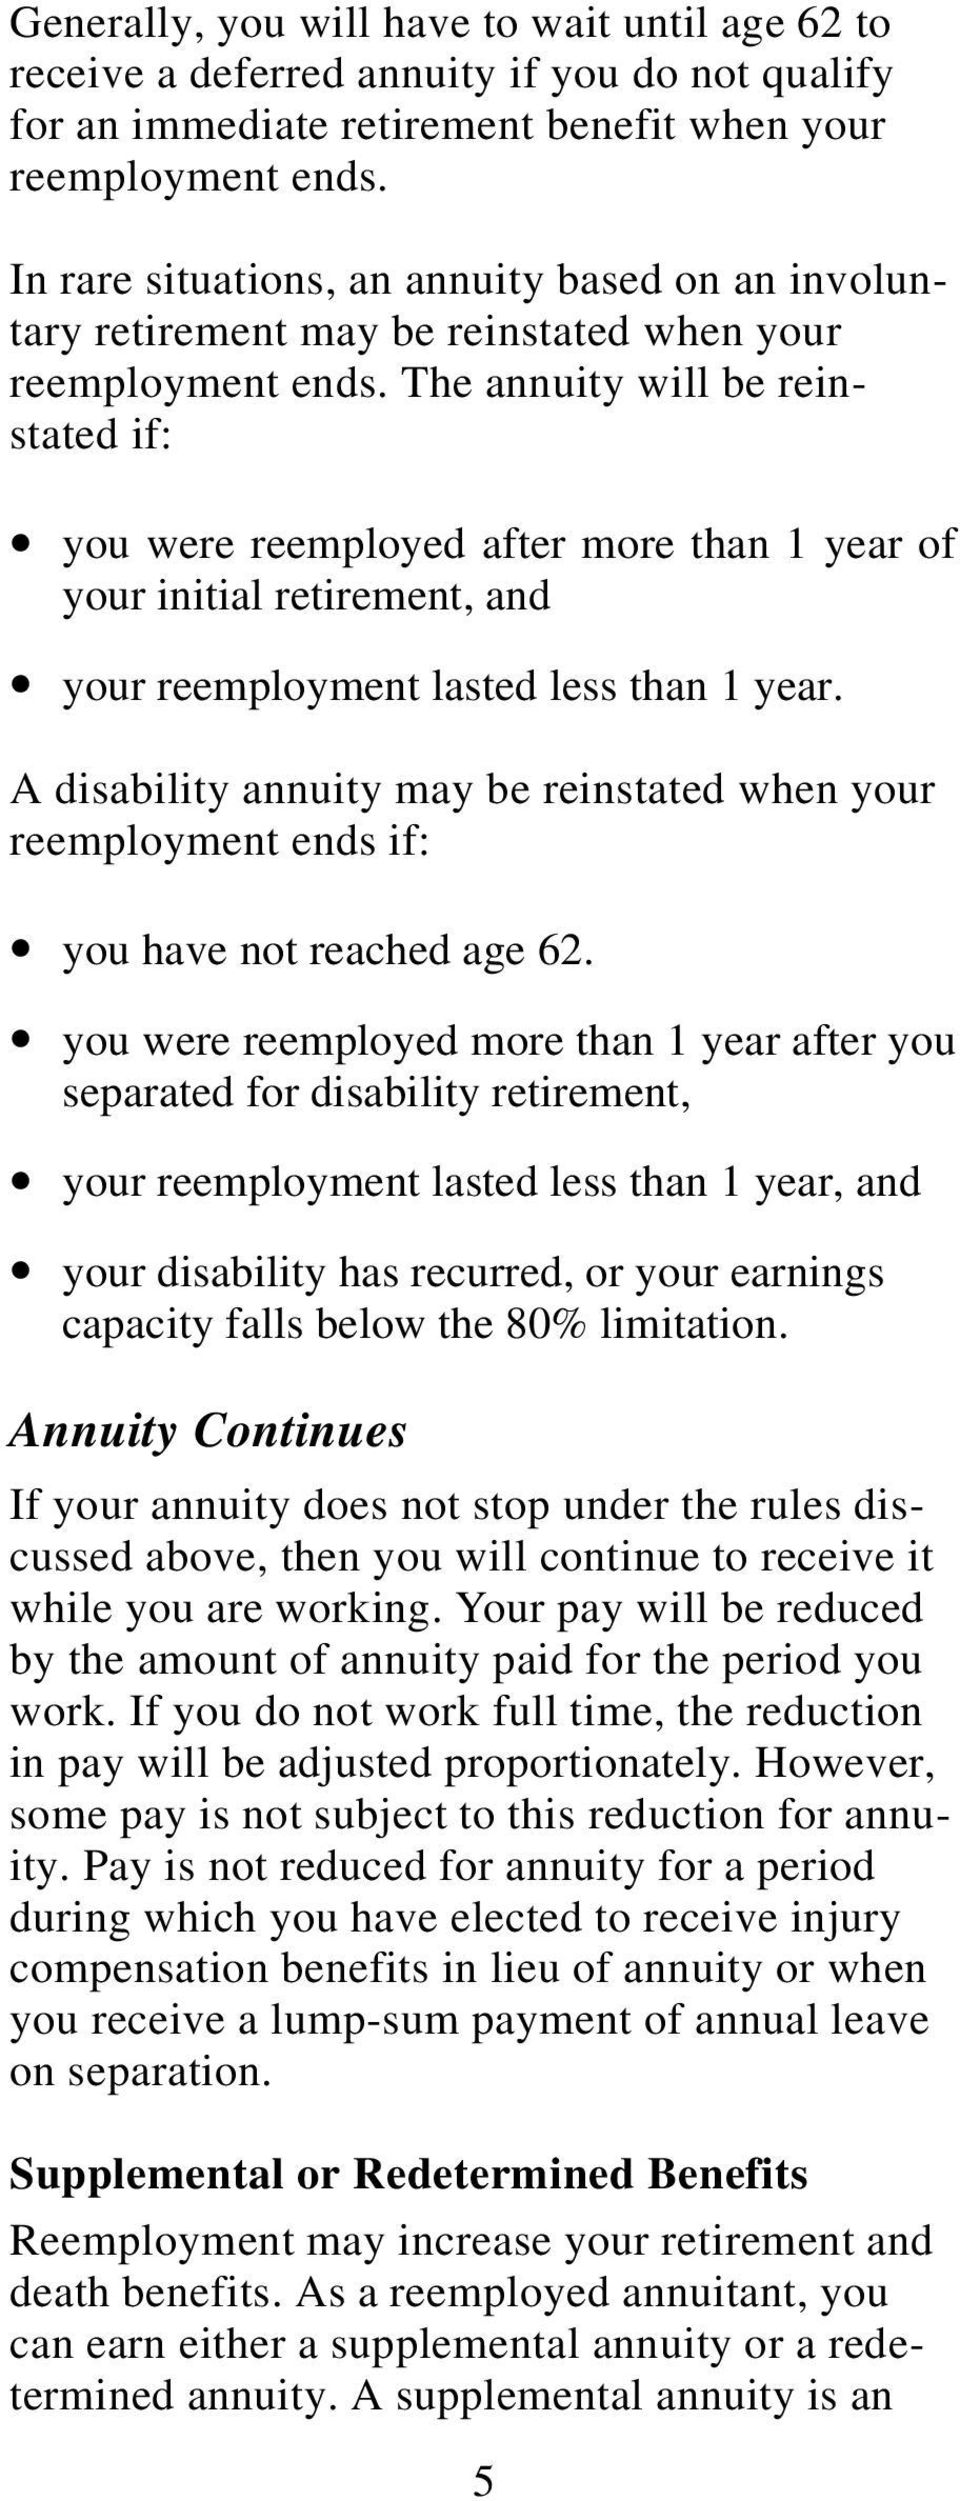 The annuity will be reinstated if: you were reemployed after more than 1 year of your initial retirement, and your reemployment lasted less than 1 year.